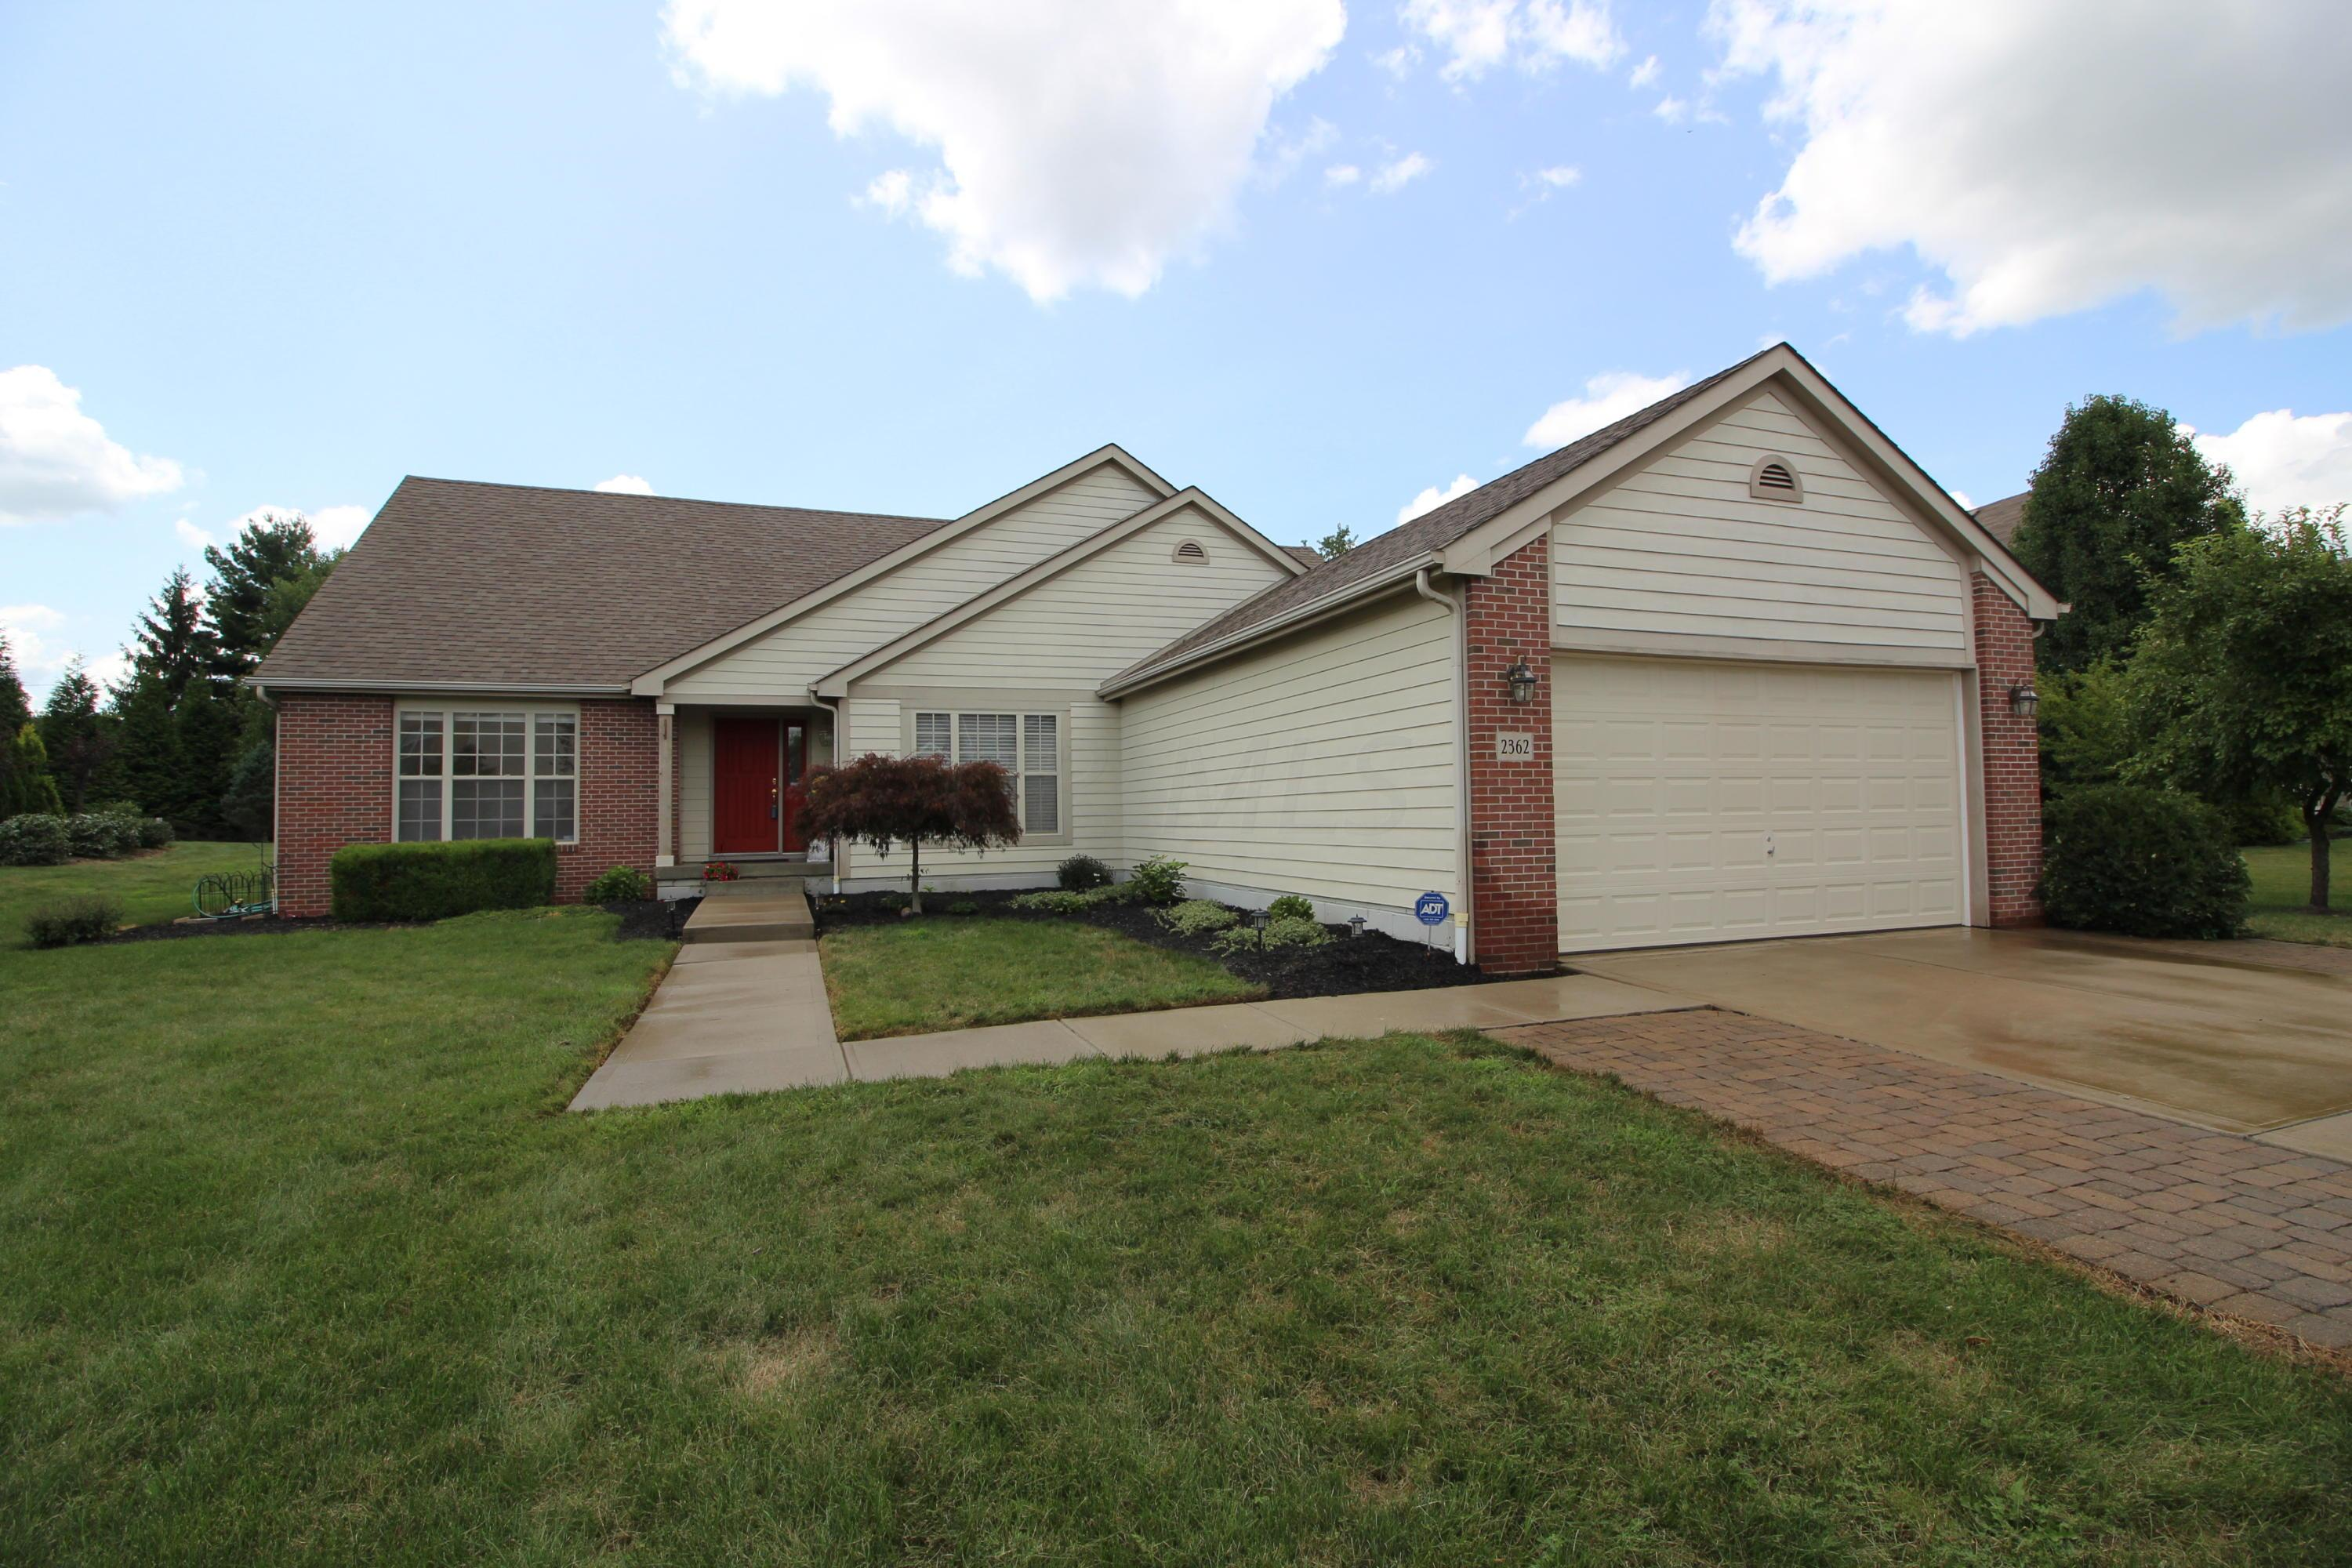 2362 Charoe Street, Lewis Center, OH 43035